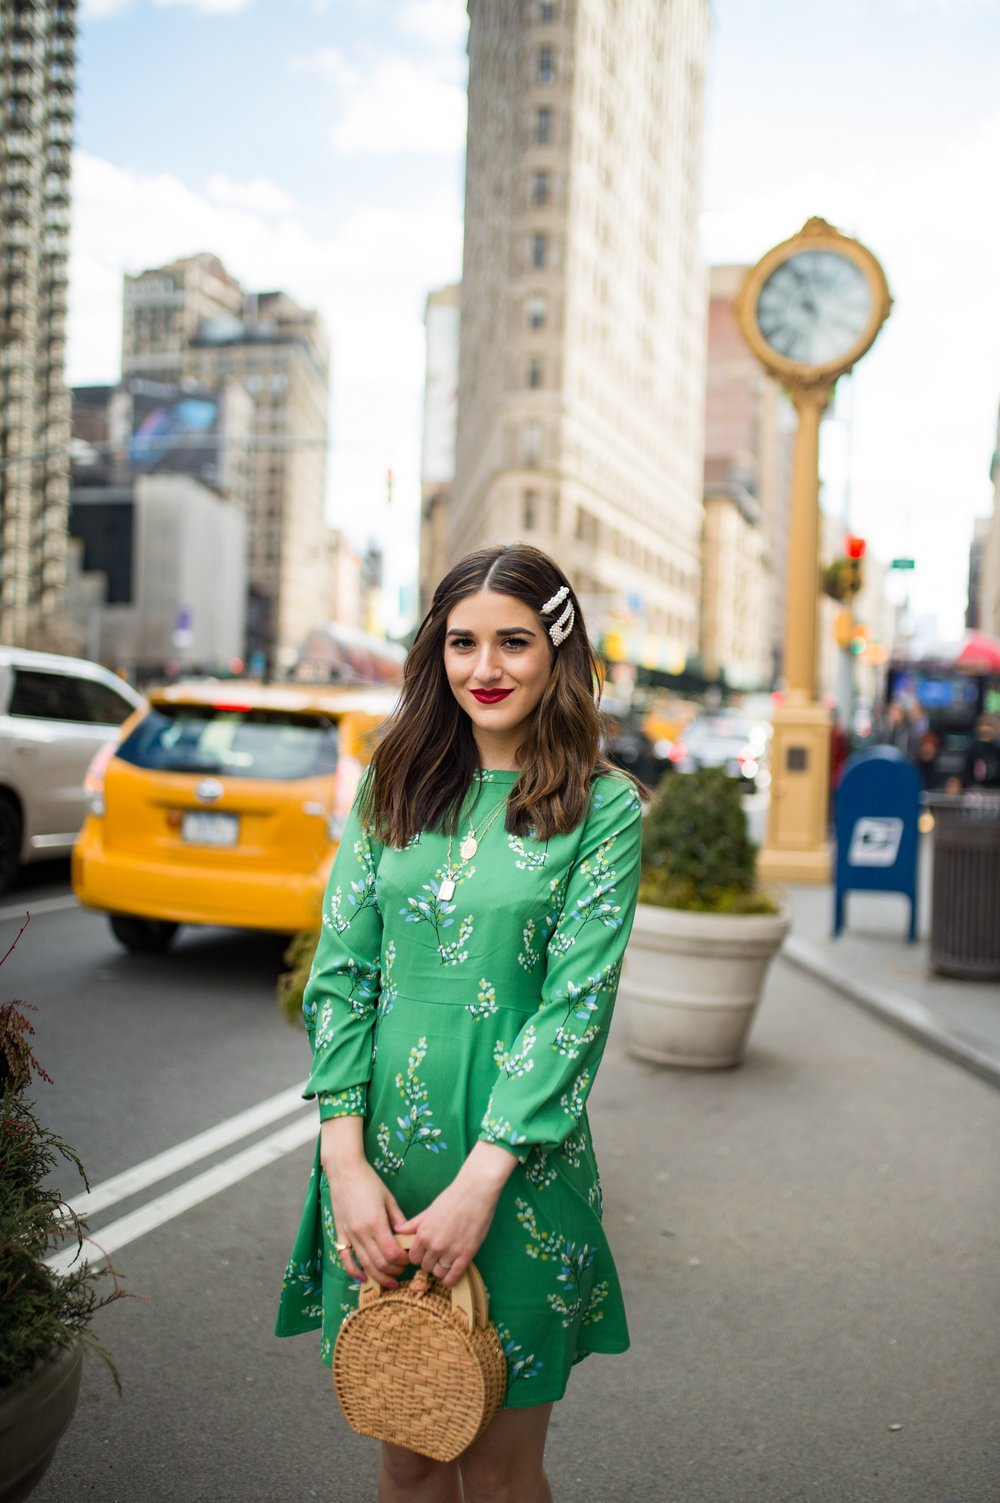 Styling Green For Spring LOFT Esther Santer Fashion Blog NYC Street Style Blogger Outfit OOTD Trendy Shopping White Heels Basket Circle Bag Florals Hair Accessories Pearl Clips Flatiron Photoshoot  Inspo Inspiration Petite Dress Inclusive Sizing Bag.jpg